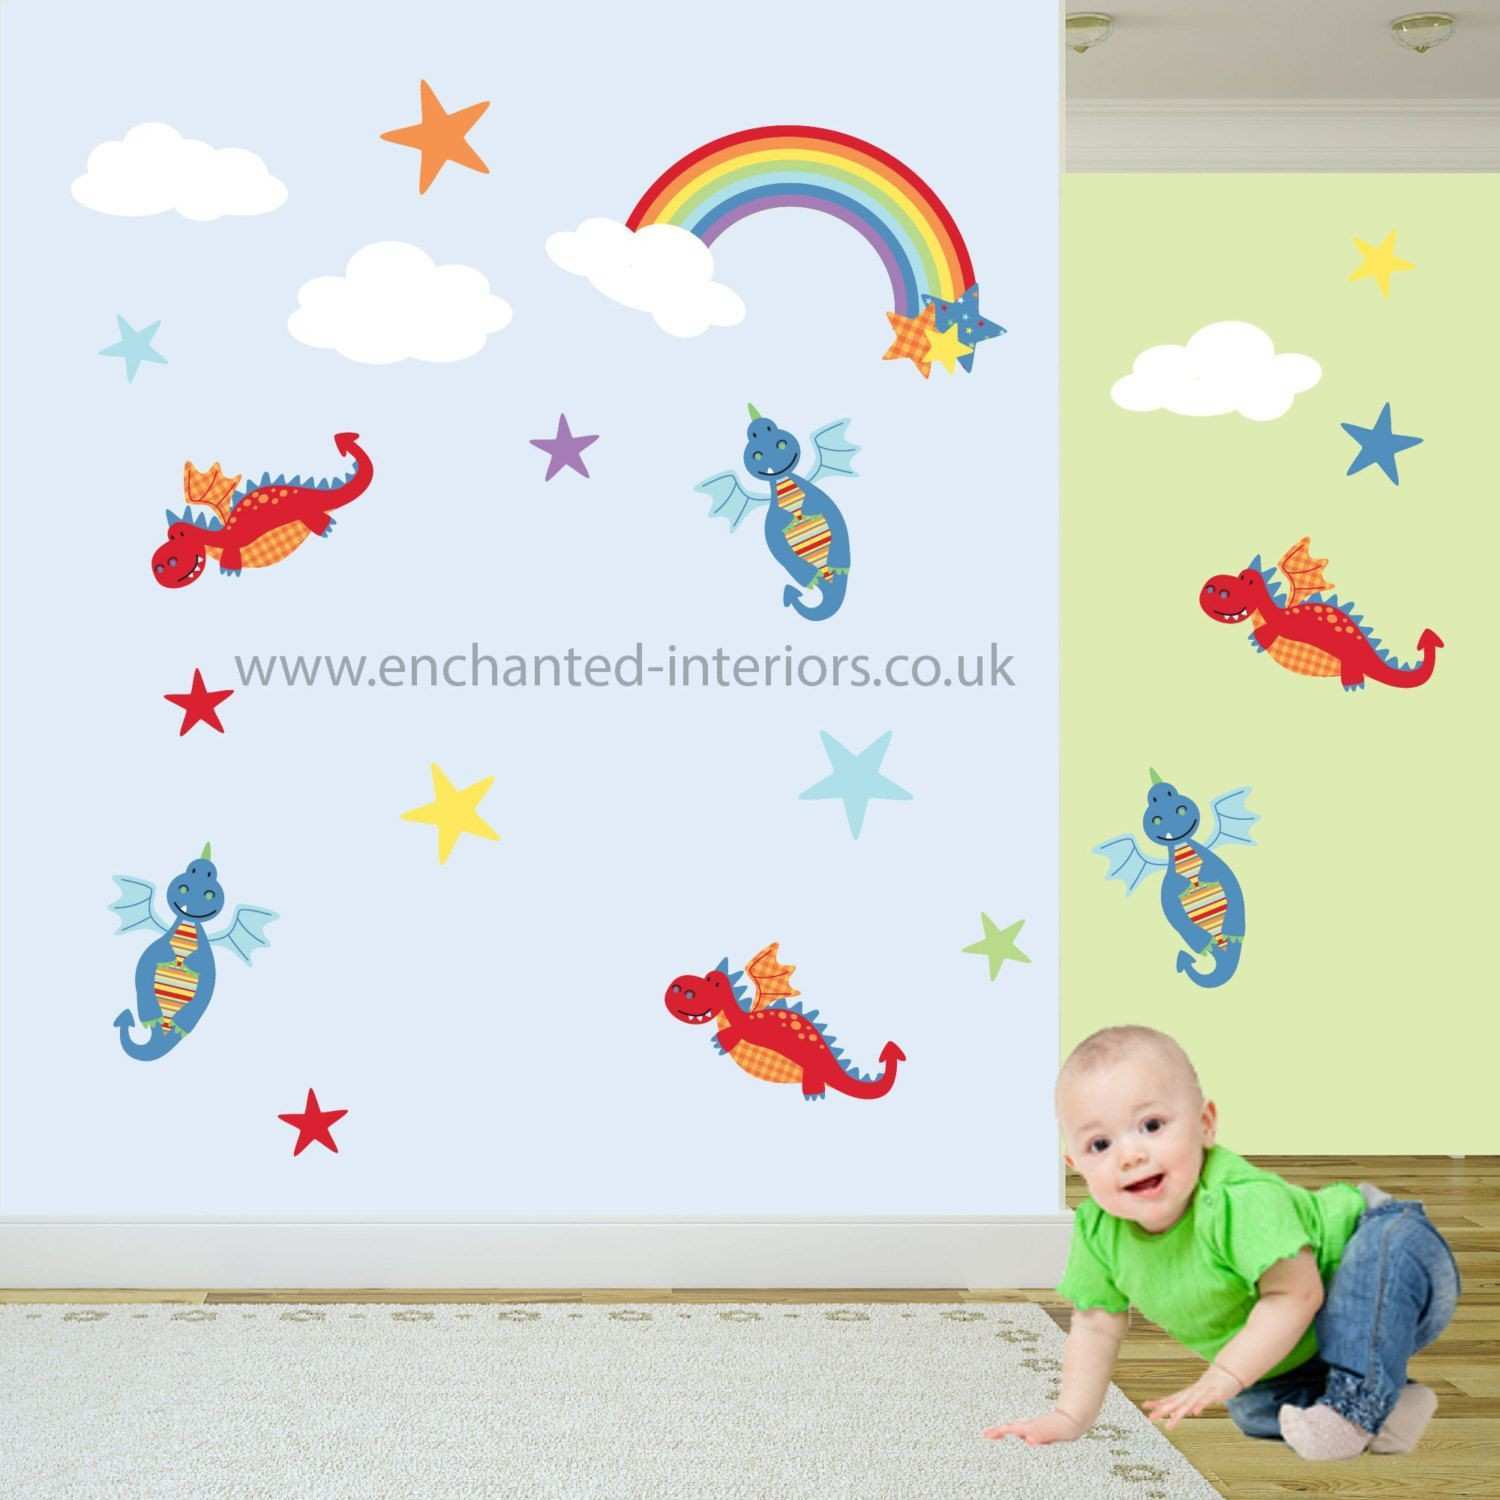 Nursery Wall Decal featuring Dragons & a Rainbow Baby boys wall